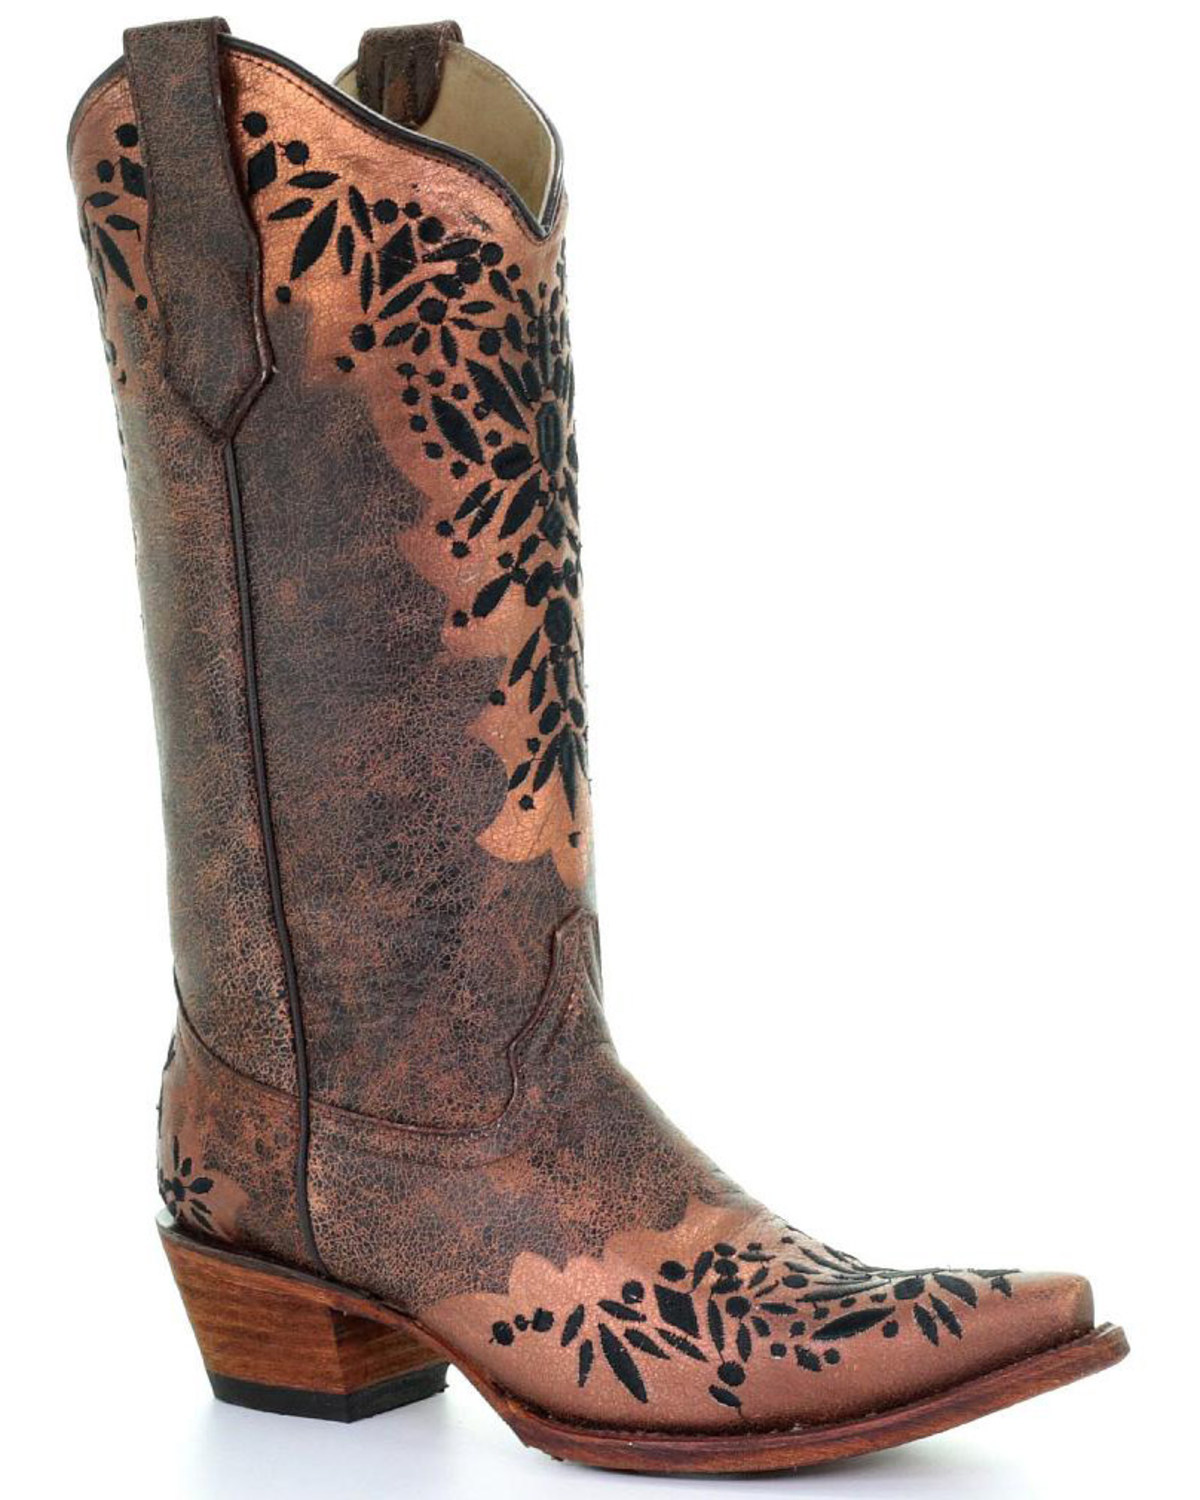 b0dddc3a00b Circle G Women's Shedron Black Embroidered Cowgirl Boots - Snip Toe